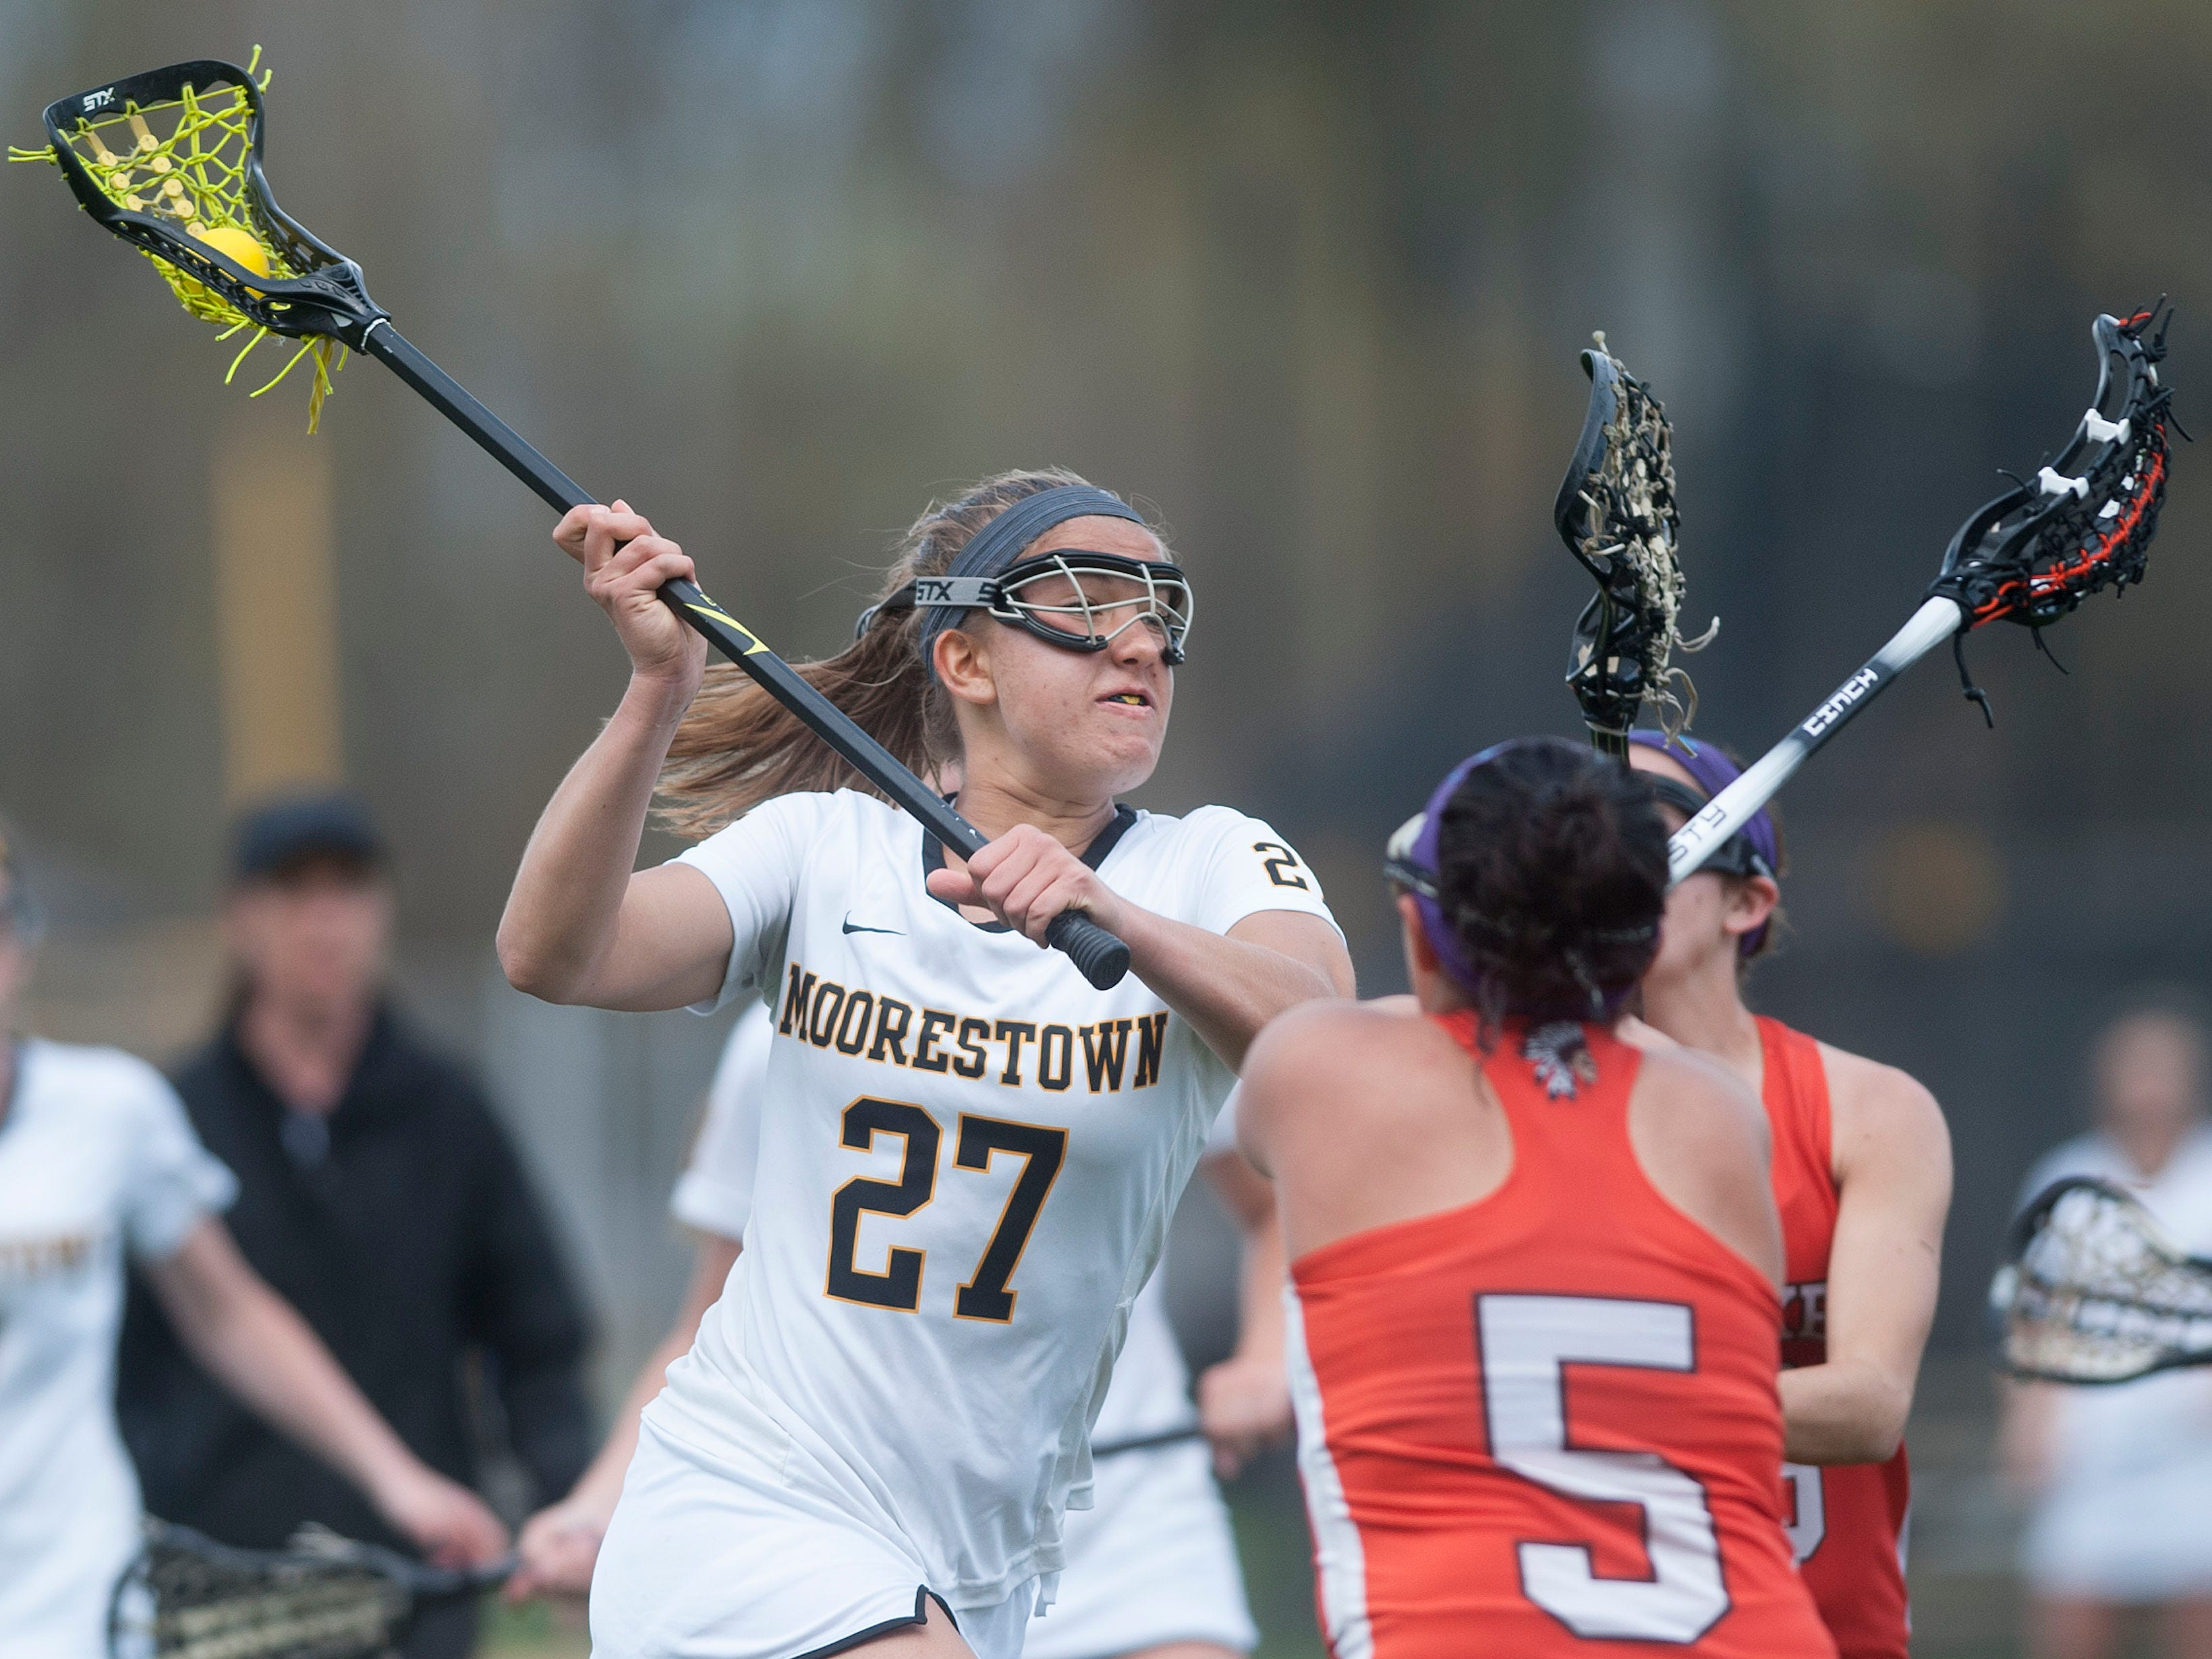 Moorestown's Alex O'Donnell, left, shoots over Cherokee's Lisa DiLullo, center, and Cherokee's Savannah Singer, right, during the 1st half of Wednesdays game played in Moorestown. 04.22.15